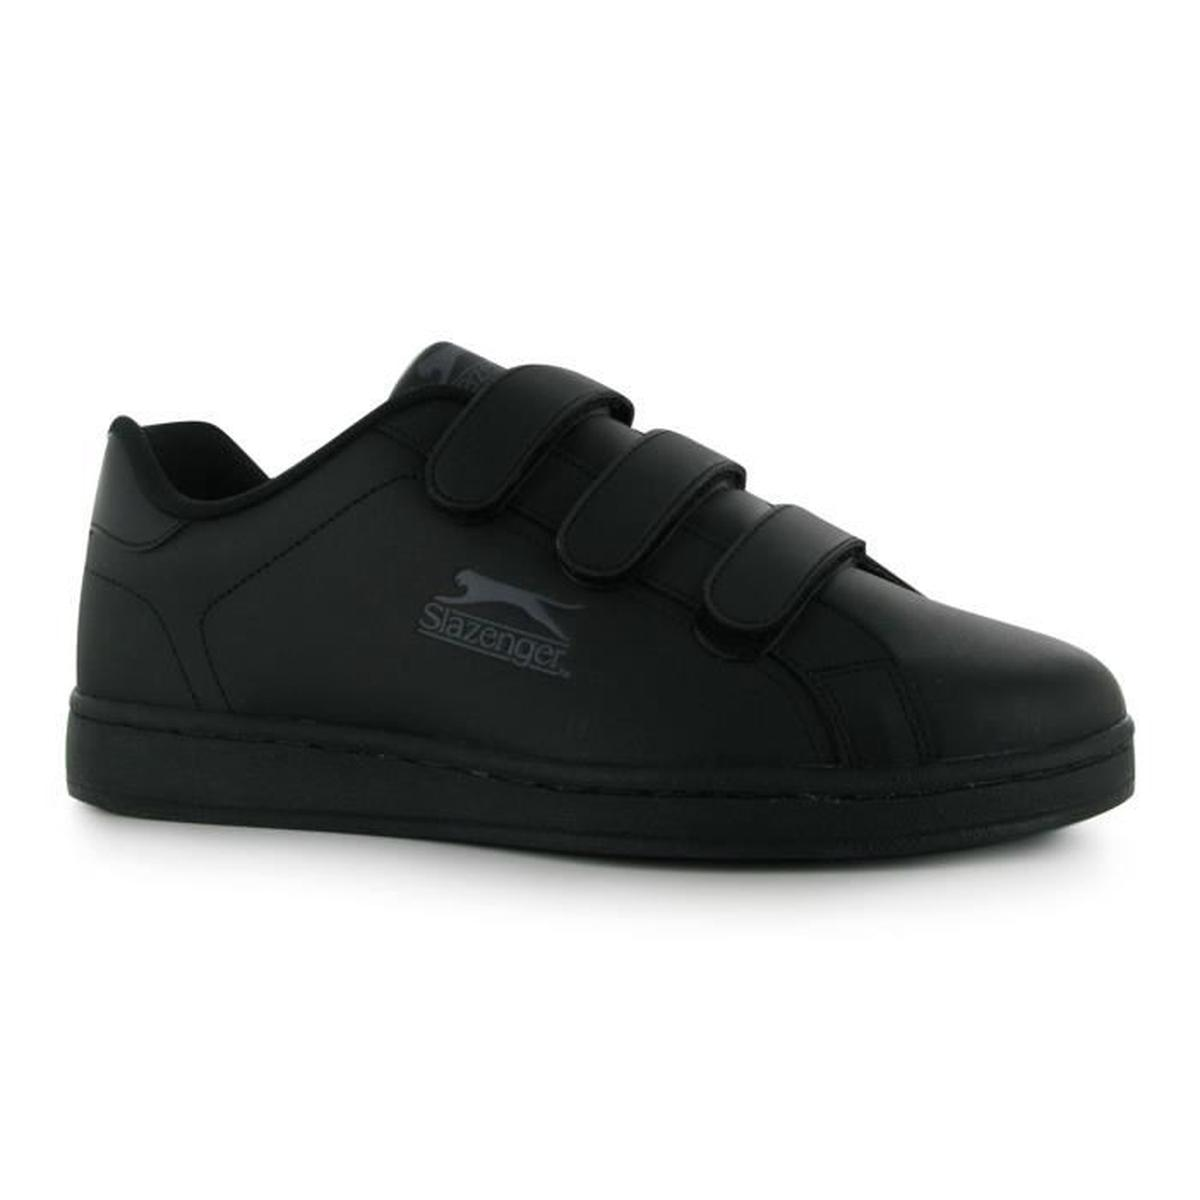 basket adidas homme a scratch Off 65% - www.bashhguidelines.org